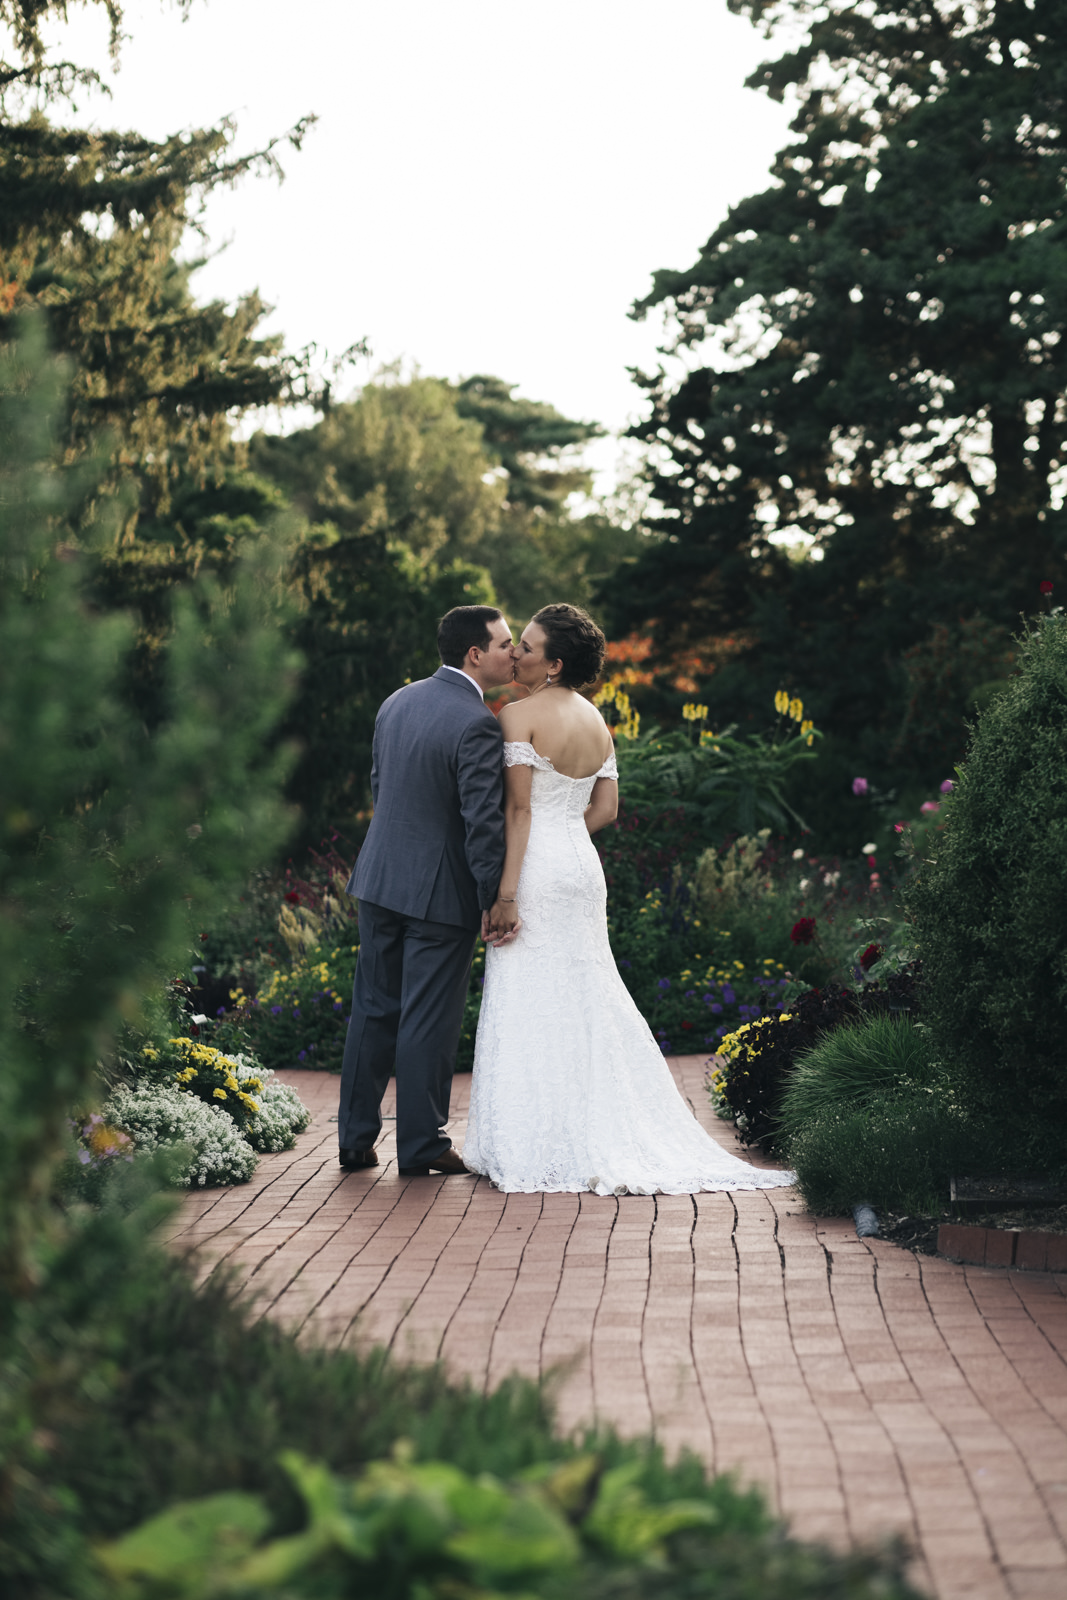 Bride and groom kiss while walking through the garden after their wedding ceremony.